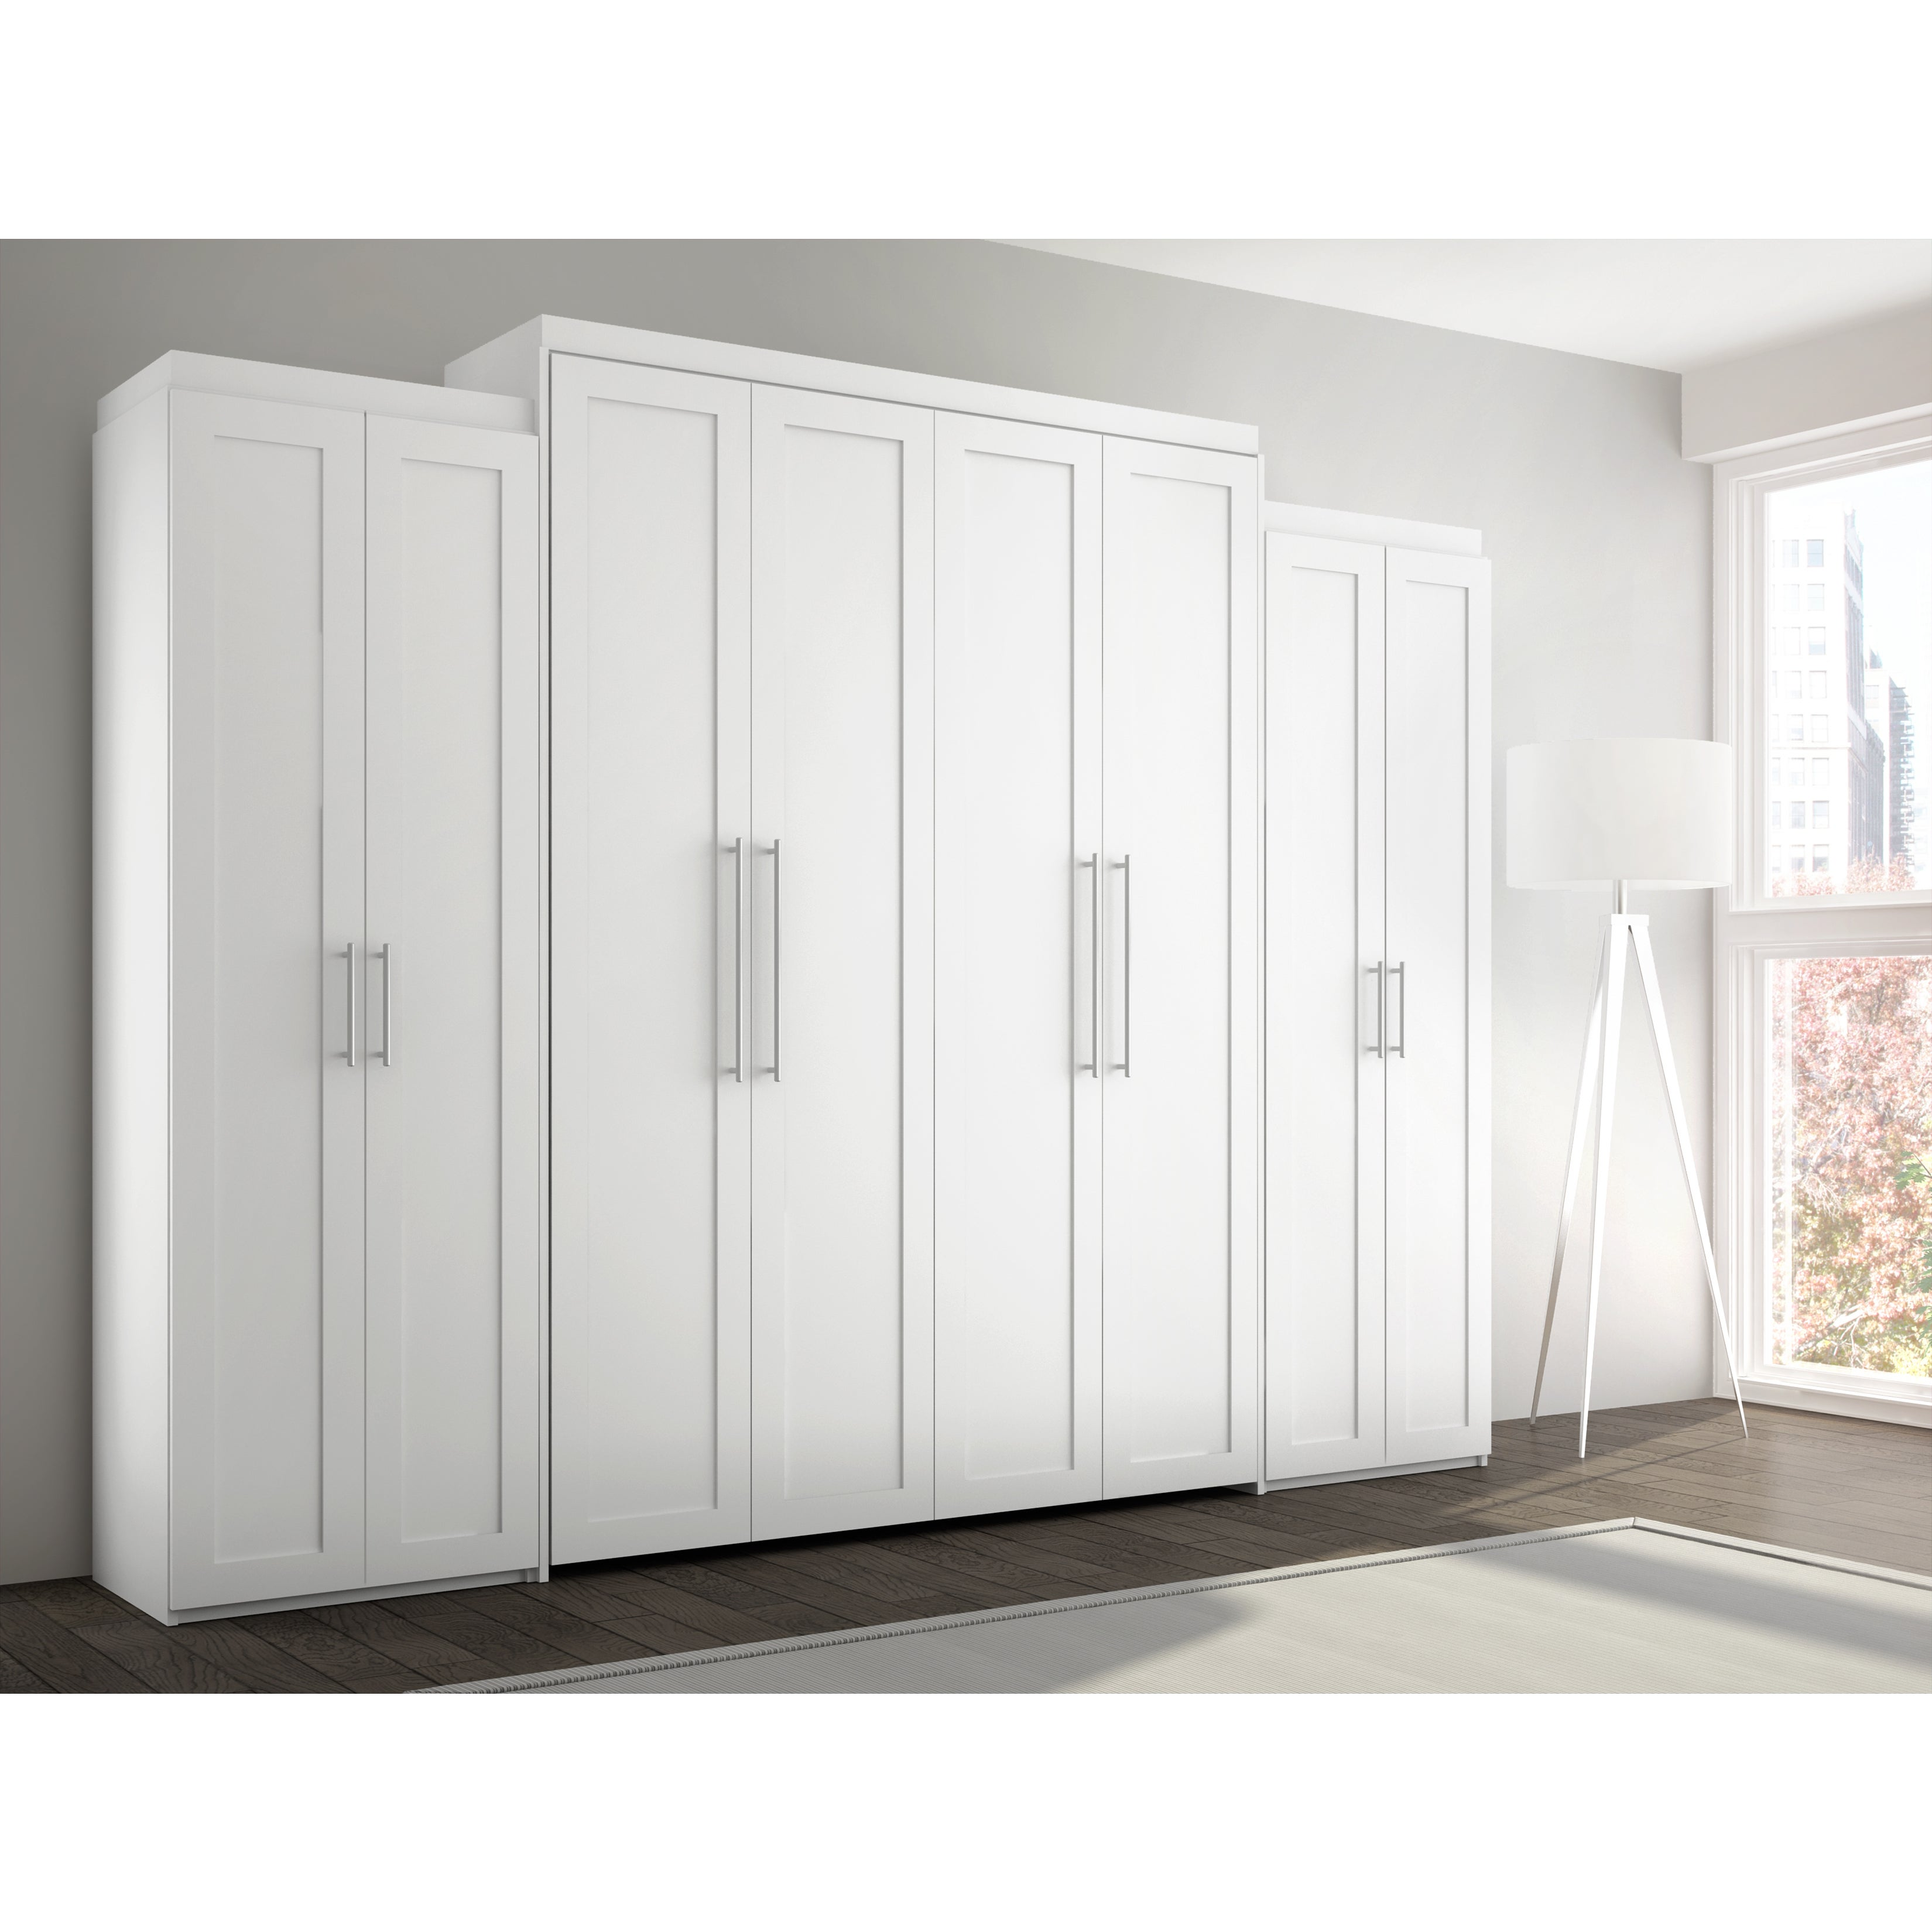 Stellar Home Furniture Shaker Full Wall Bed (White)